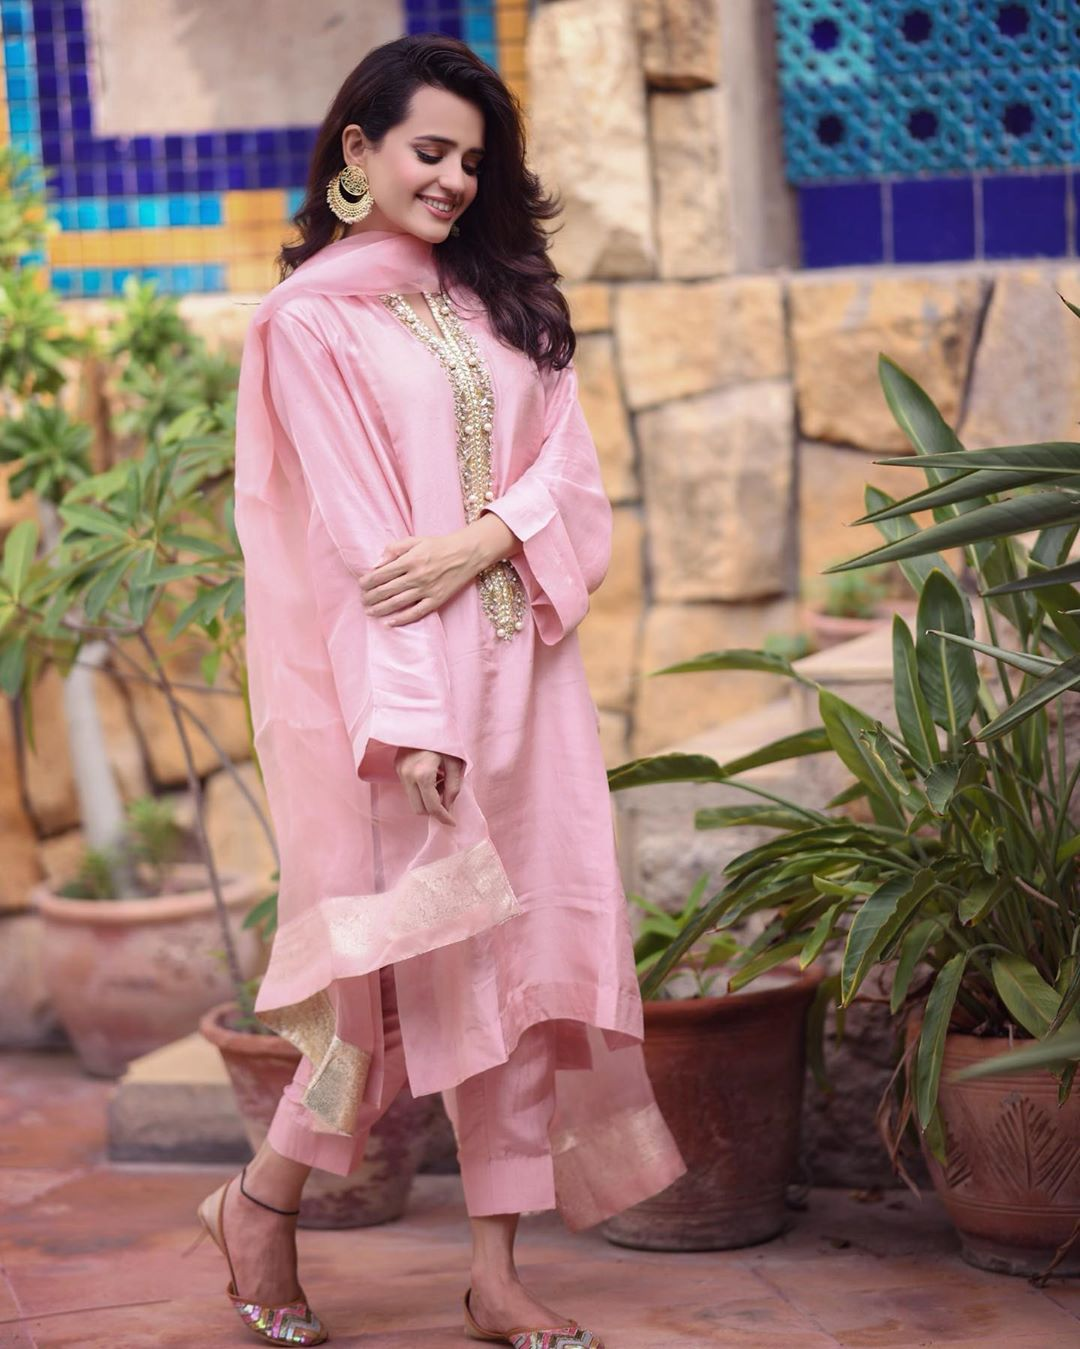 Sumbul Iqbal Latest Beautiful Pictures from her Instagram